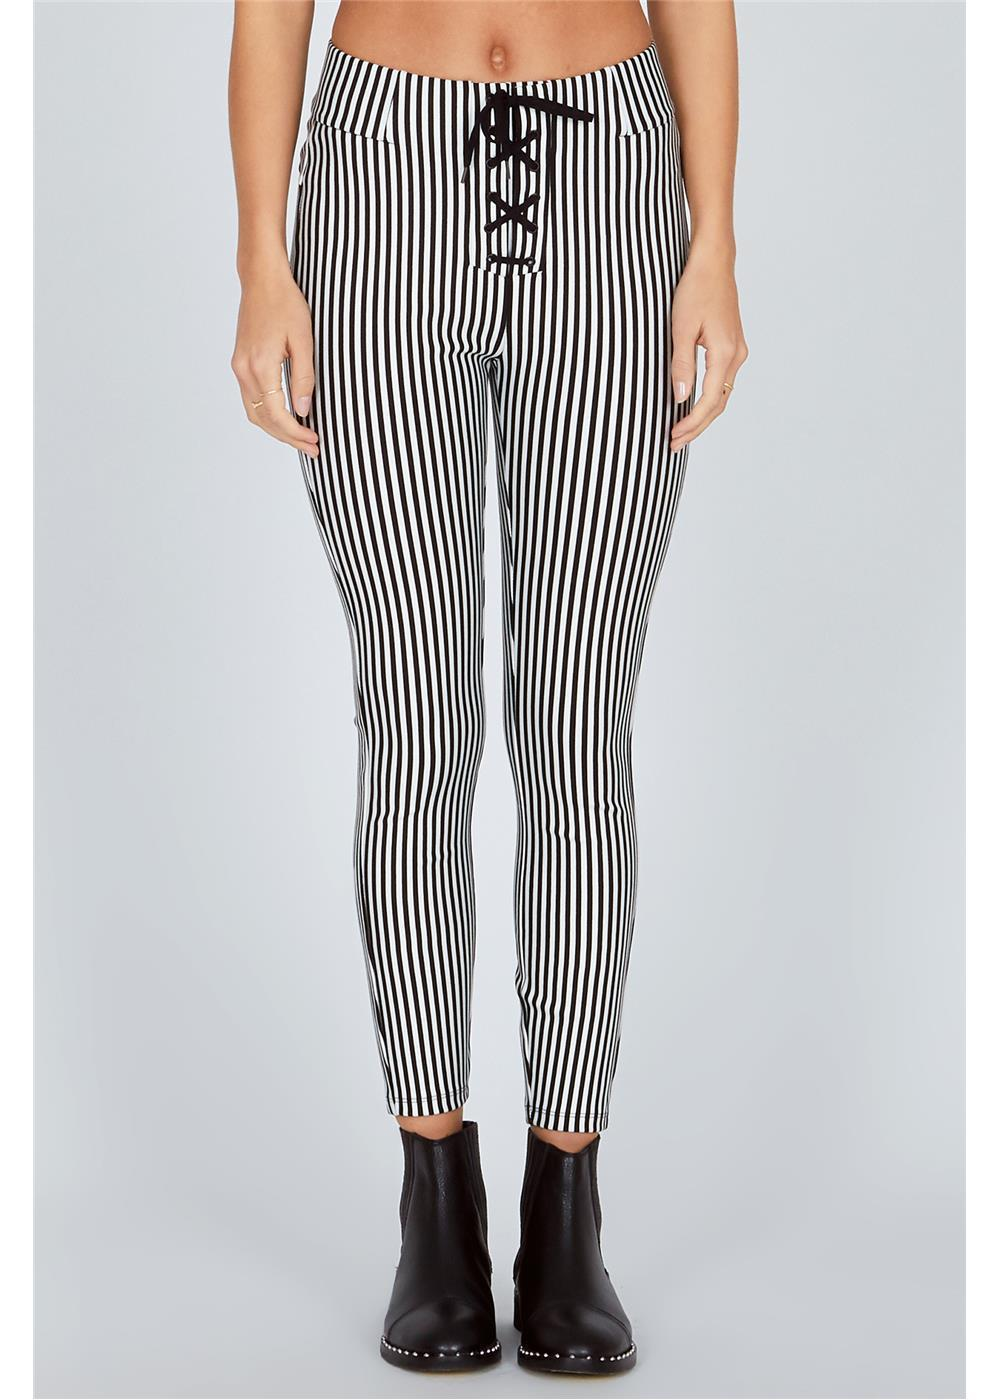 MIDDLE OF THE ROAD PANT-EUR ONLY-STR